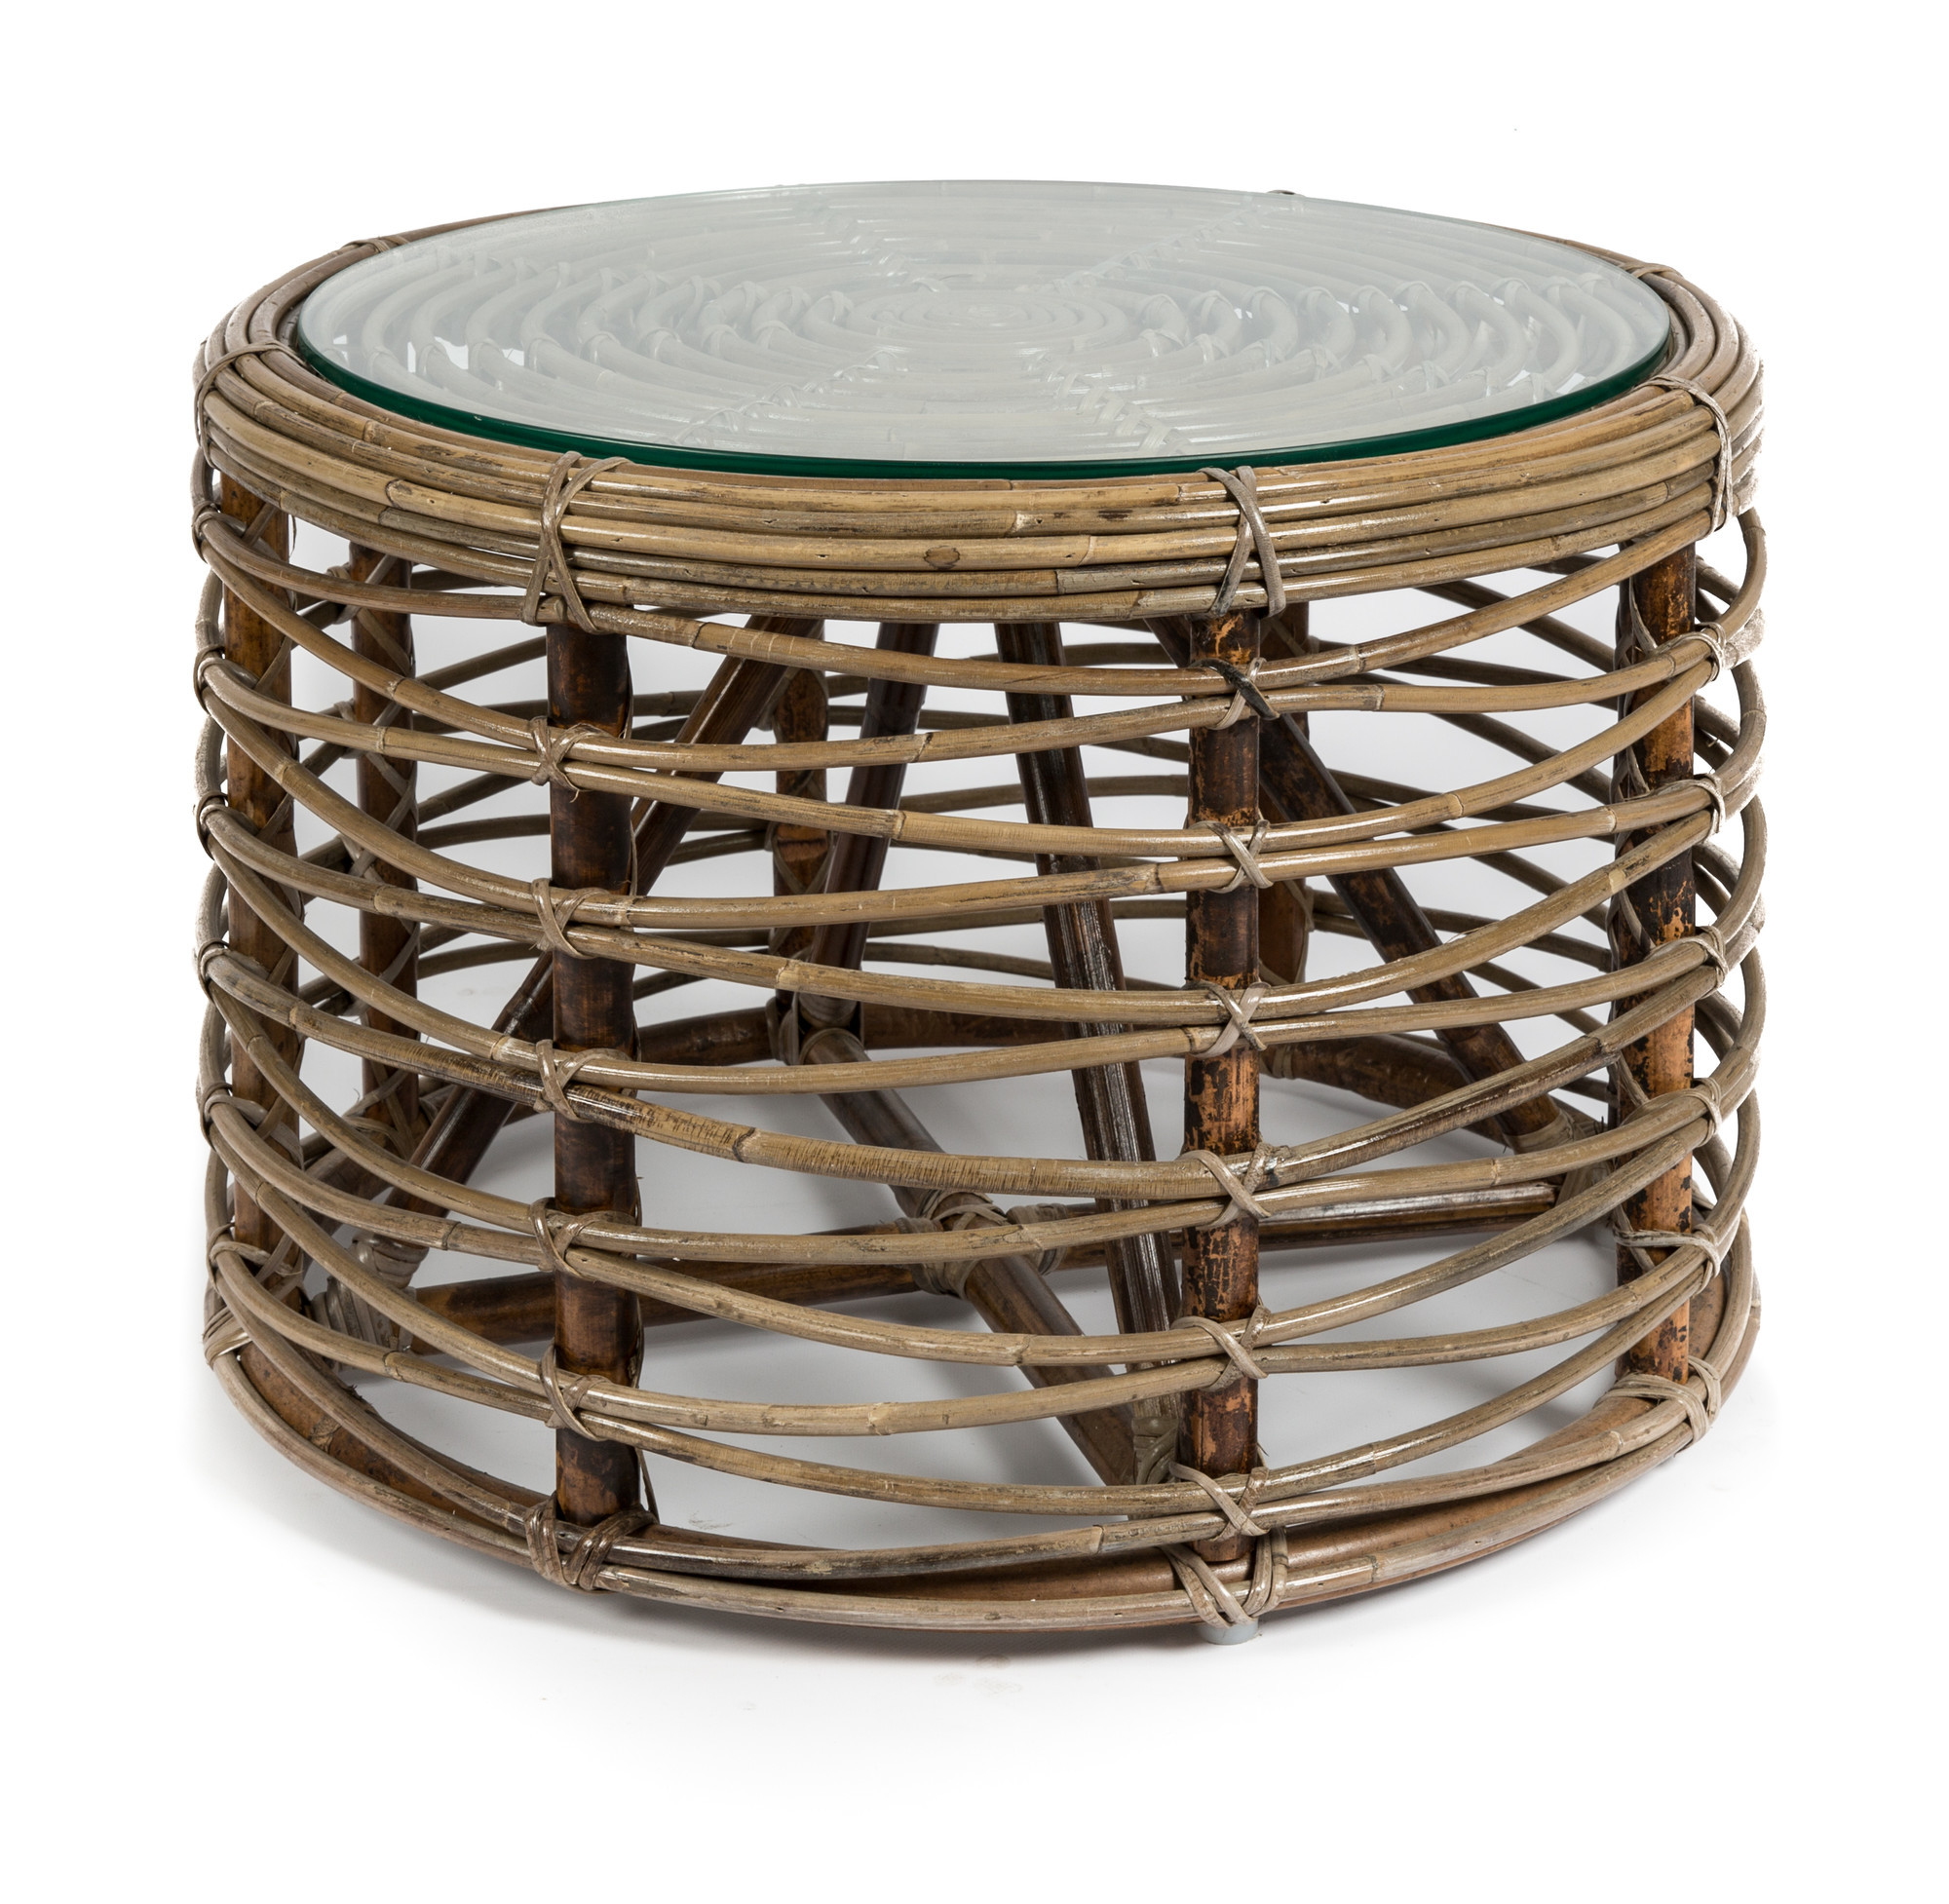 Woven Rattan Round Coffee Table